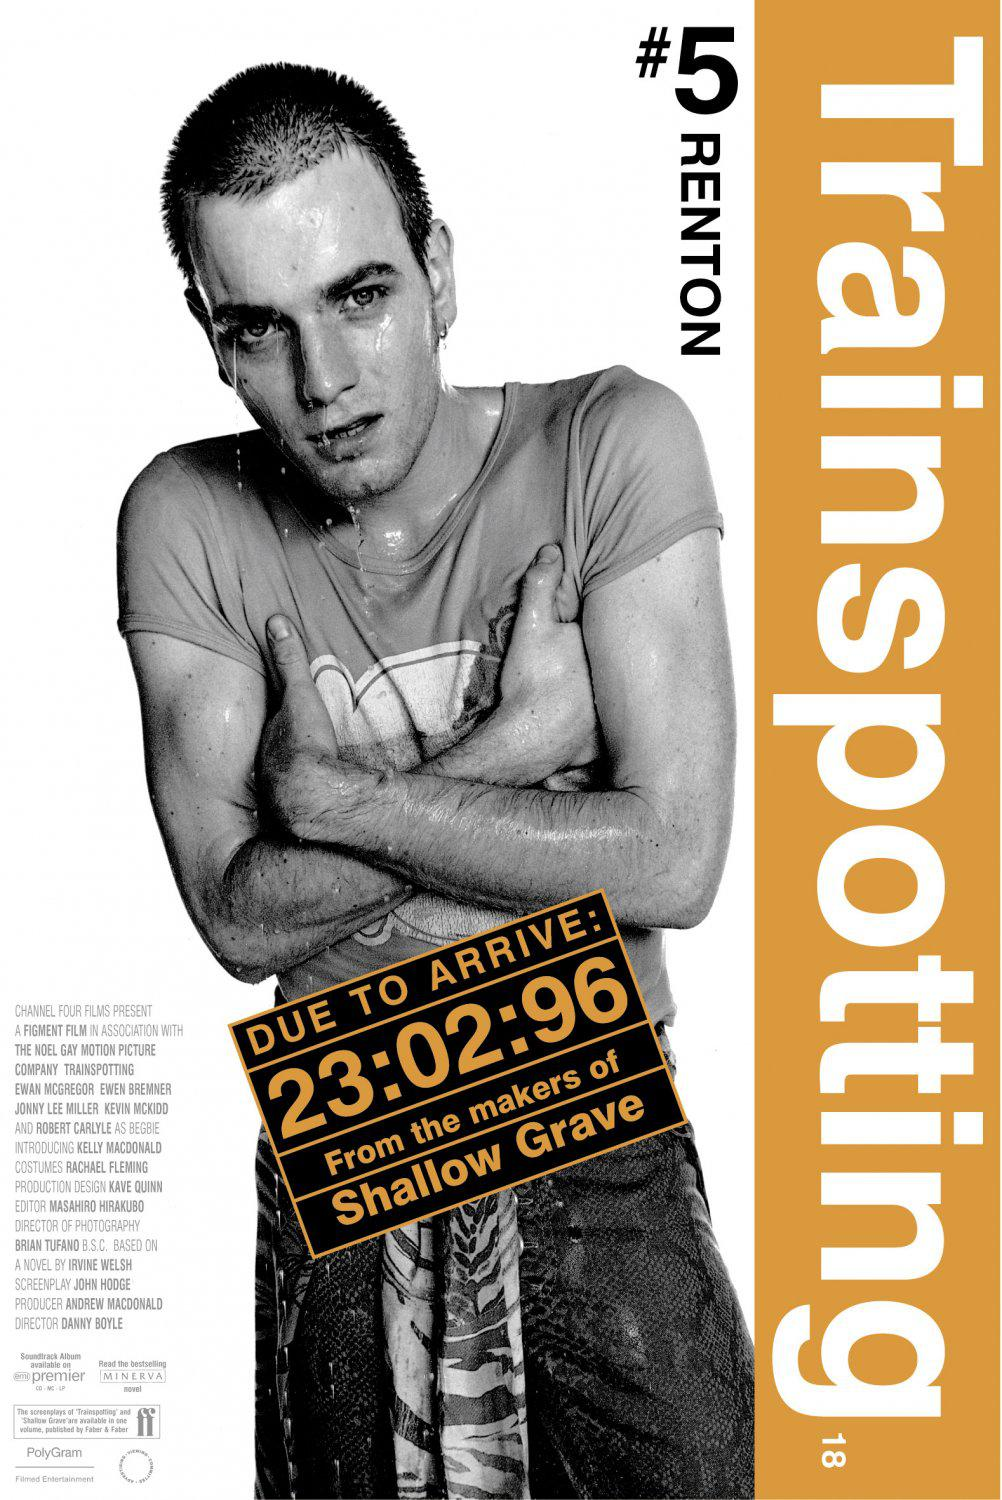 Trainspotting - poster - Renton